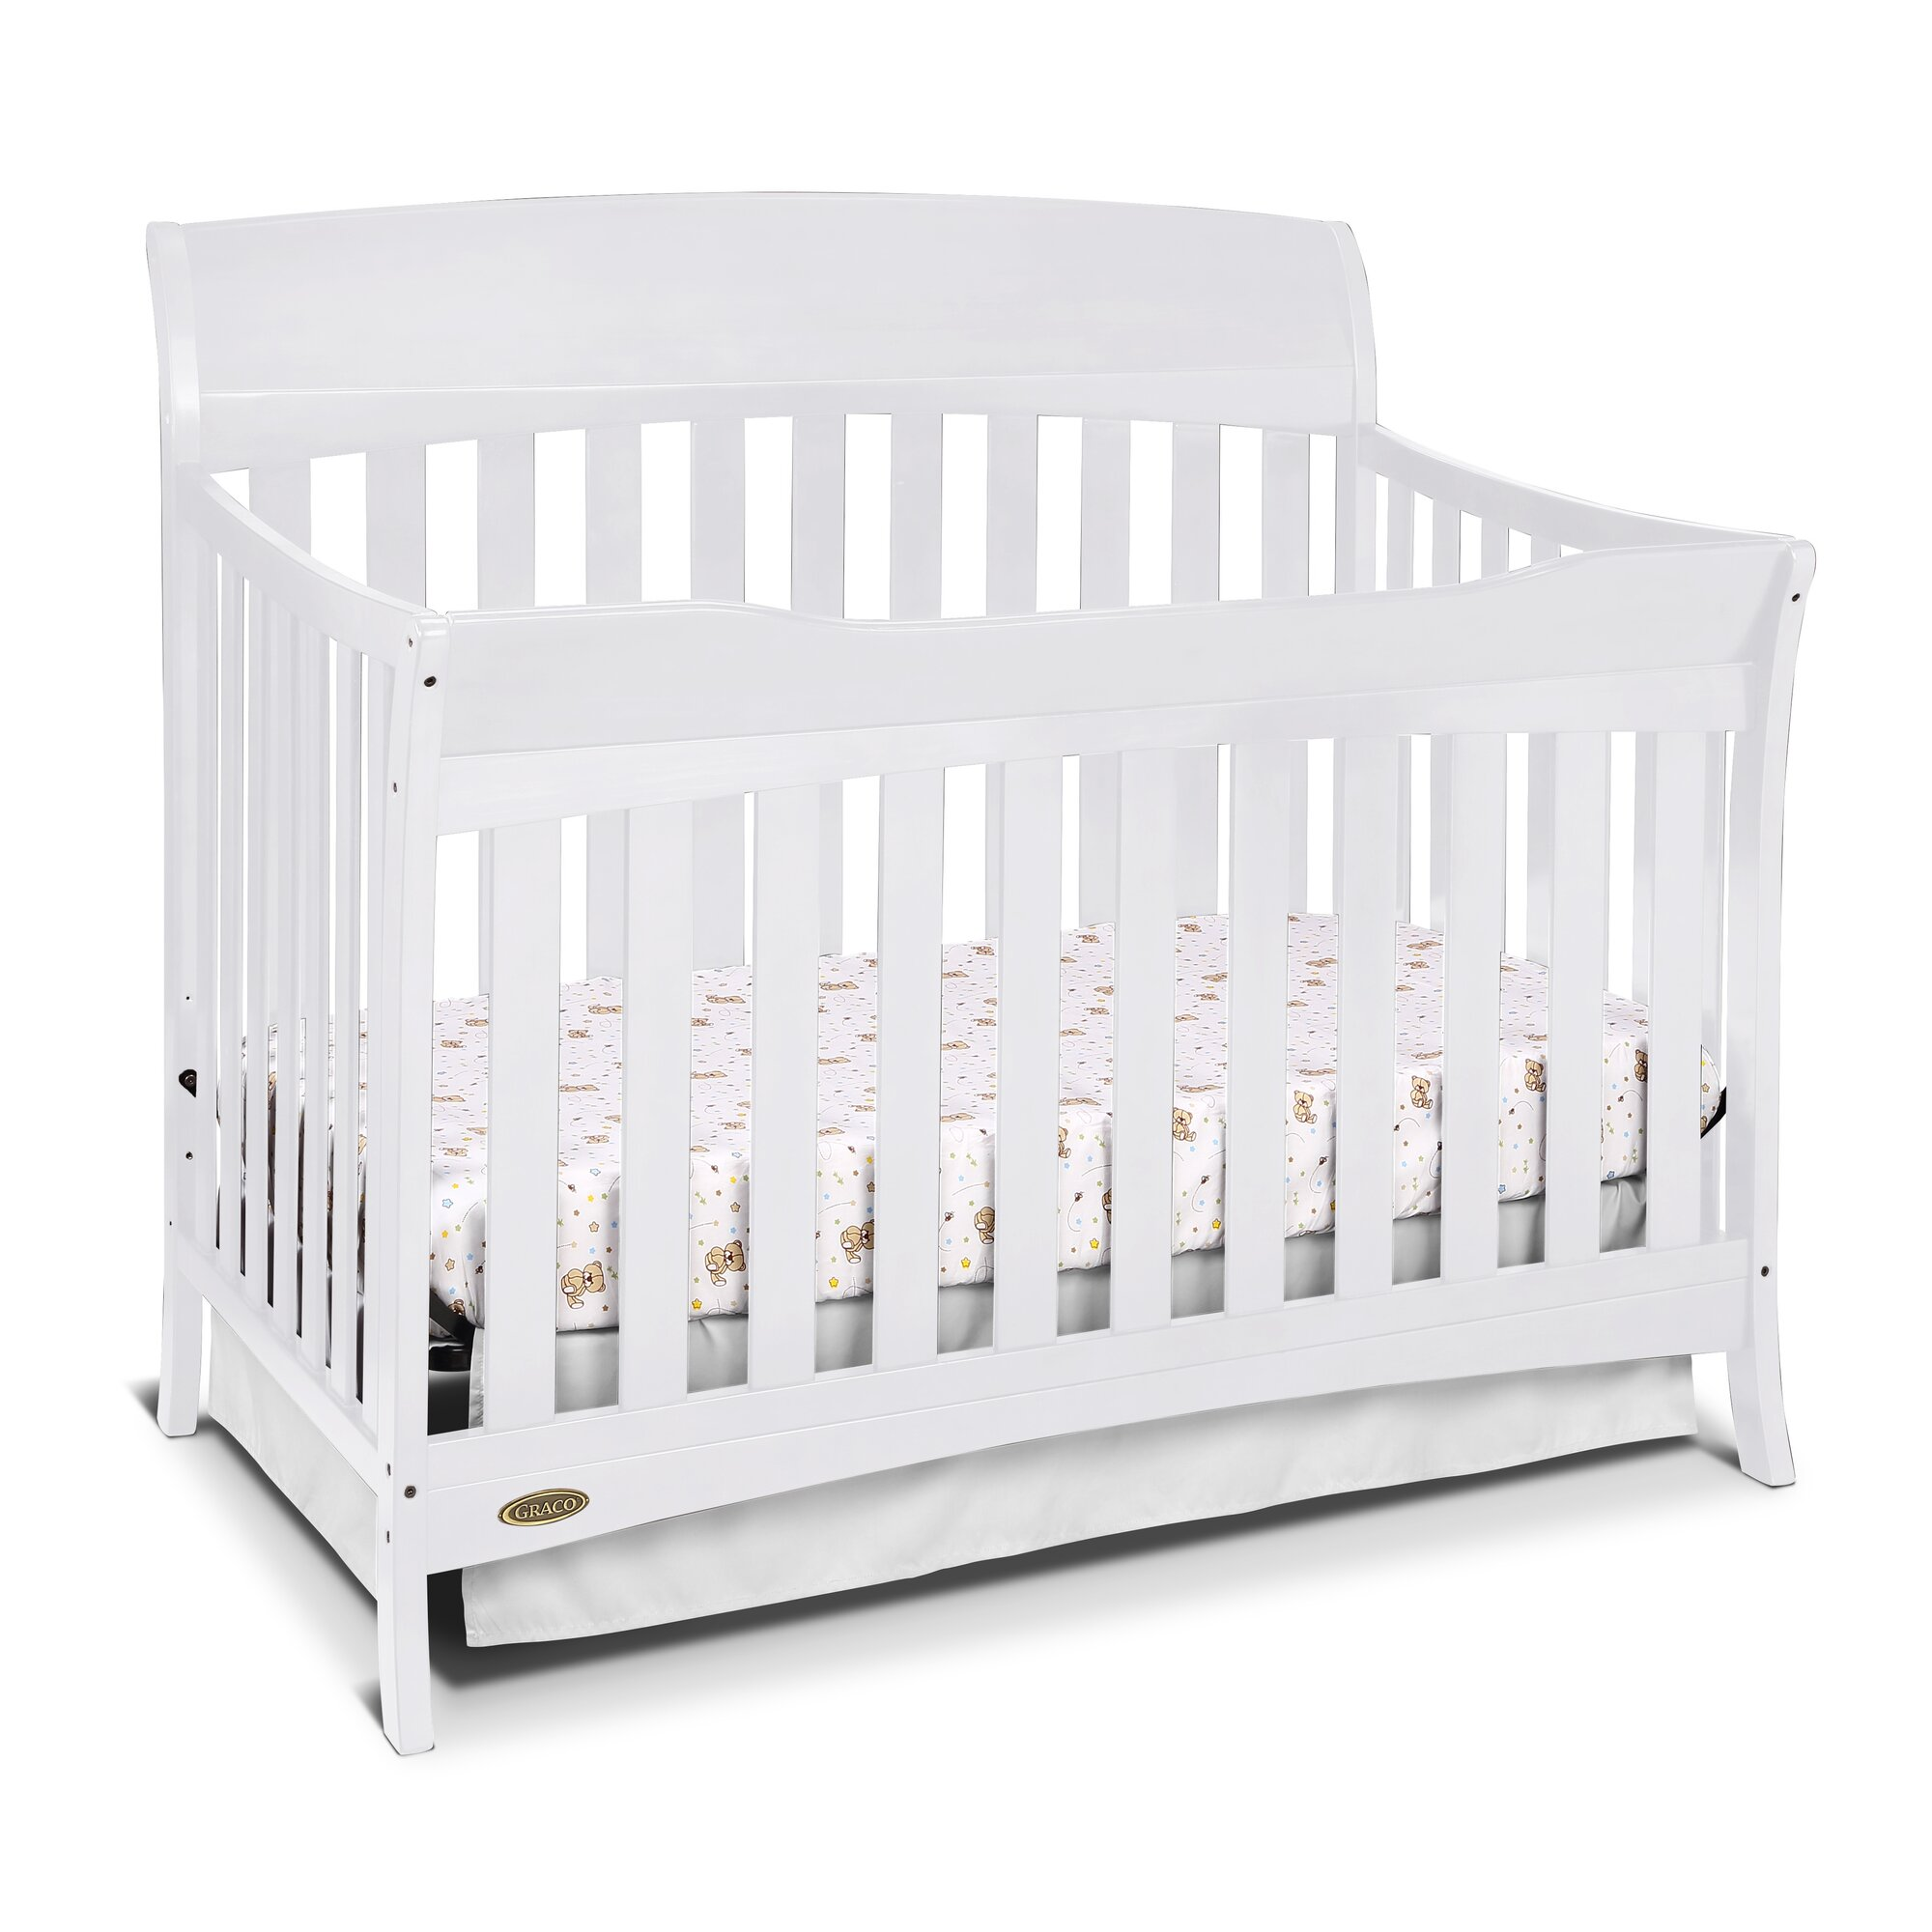 Crib for sale louisville ky - Lennon 4 In 1 Convertible Crib